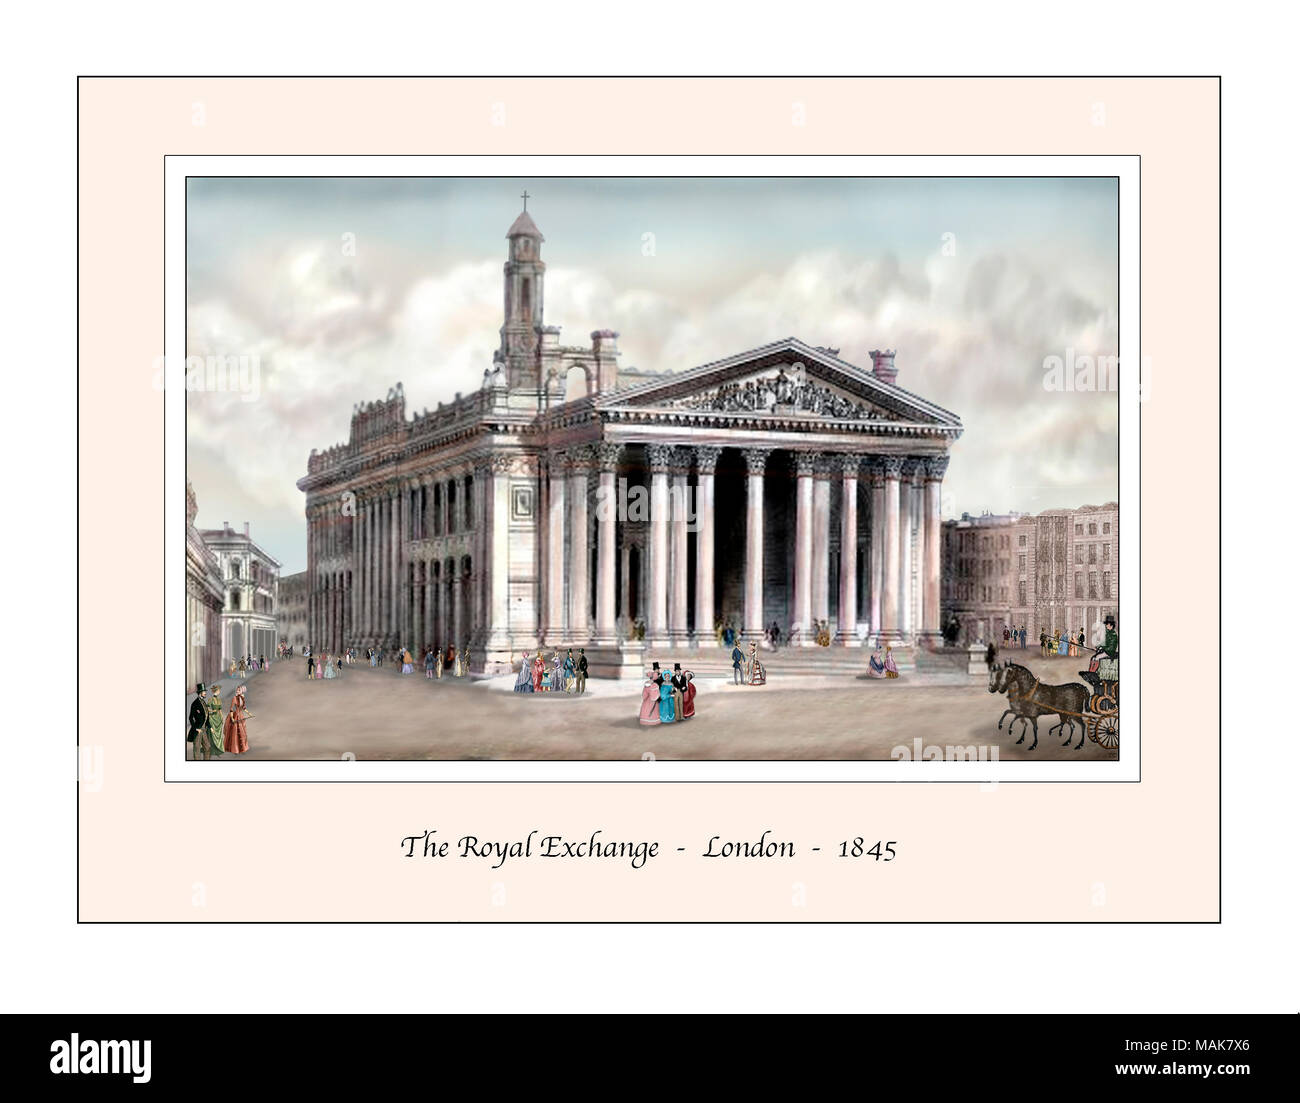 Royal Exchange London Original Design from a 19th century Engraving Stock Photo